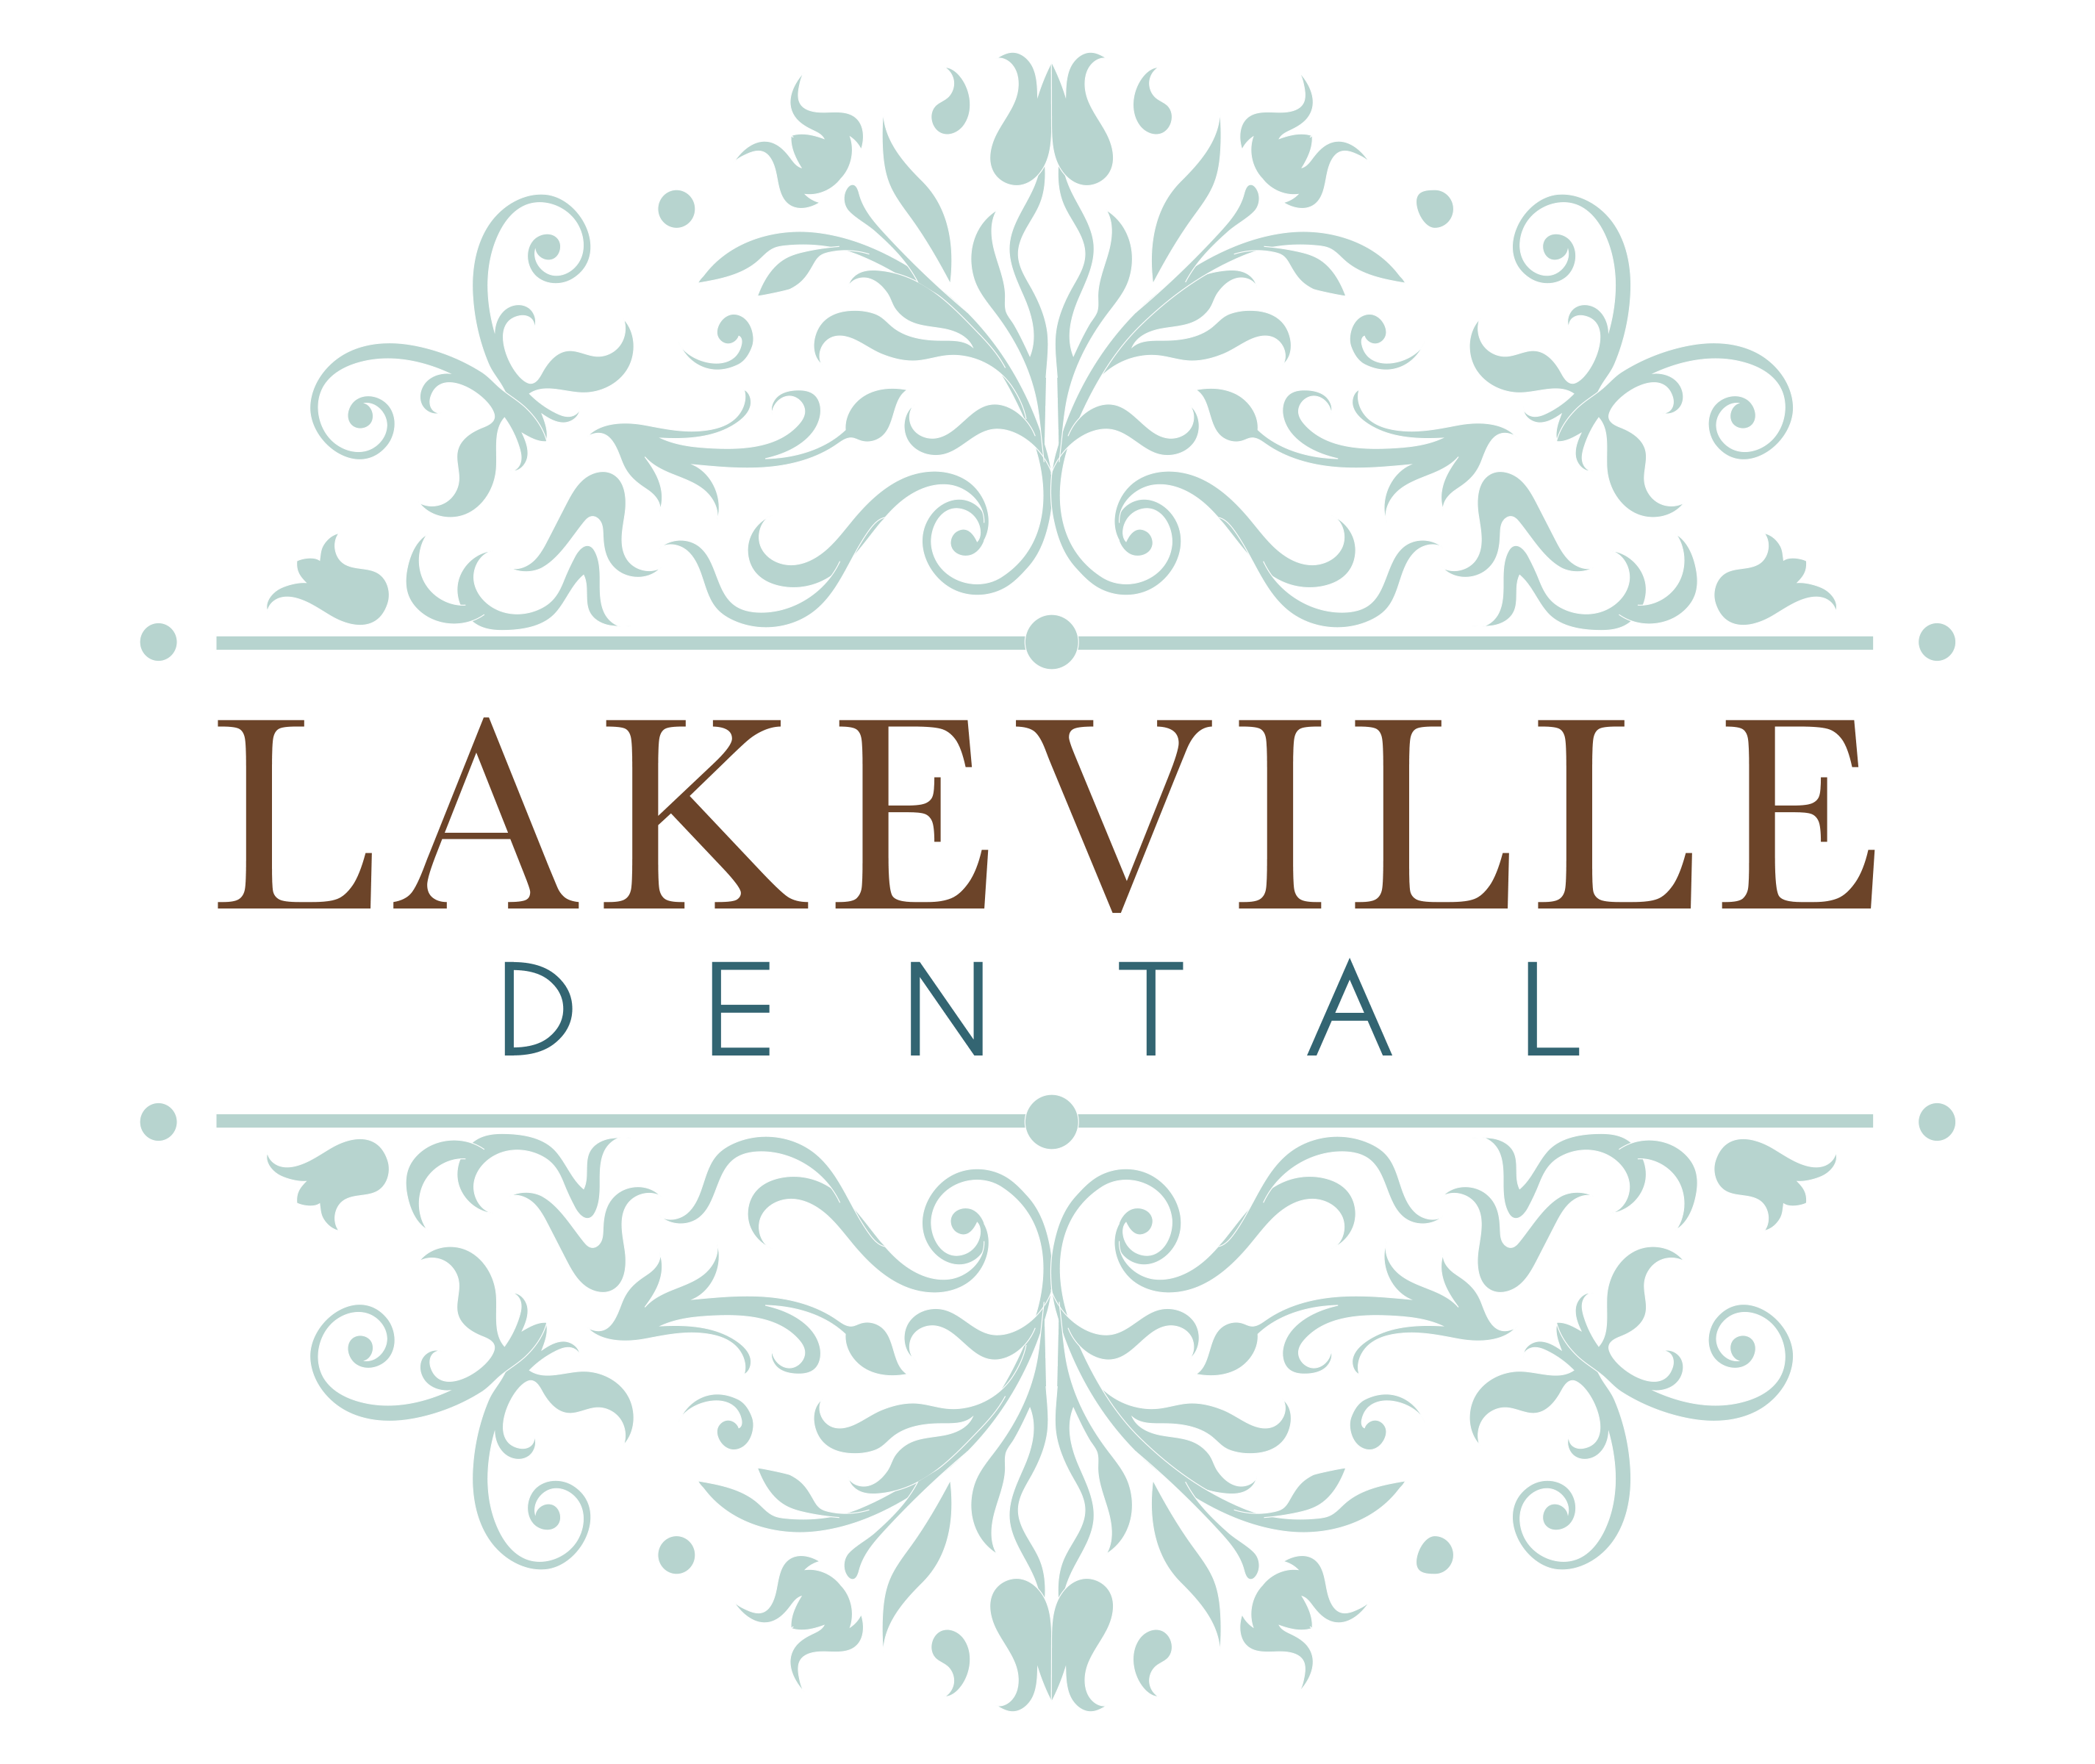 Lakeville Dental